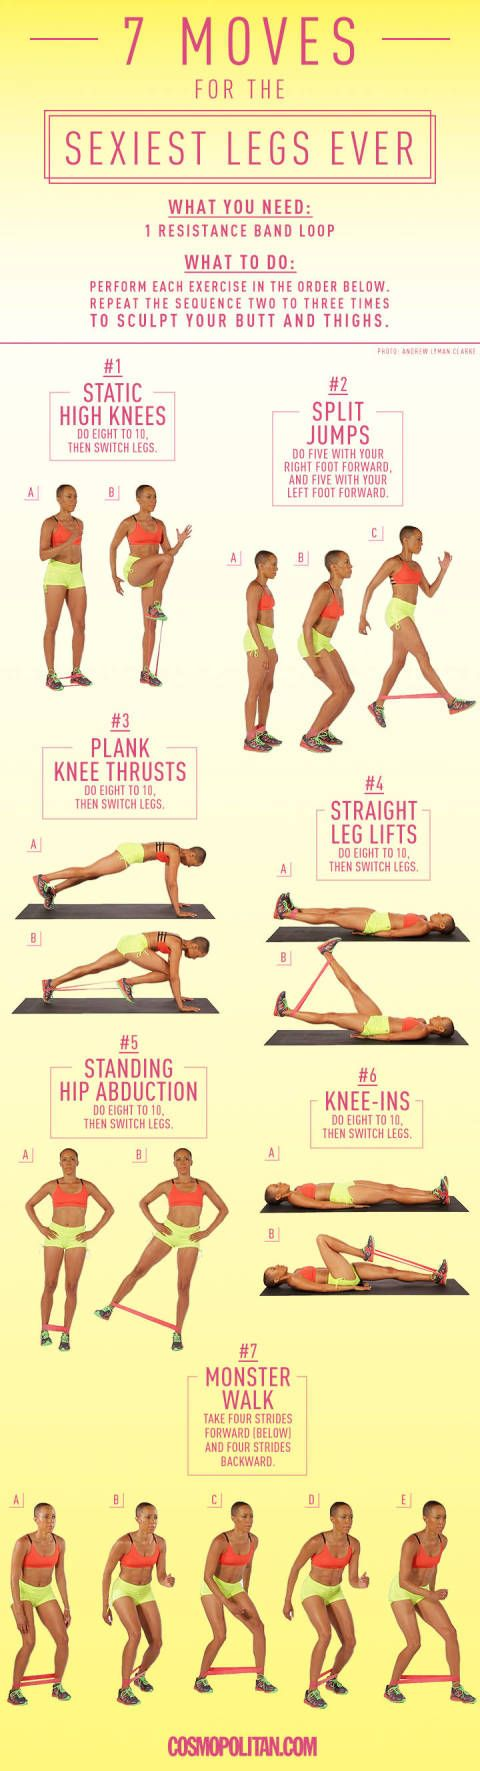 7 Exercises For The Sexiest Legs Ever Fitness Pinterest